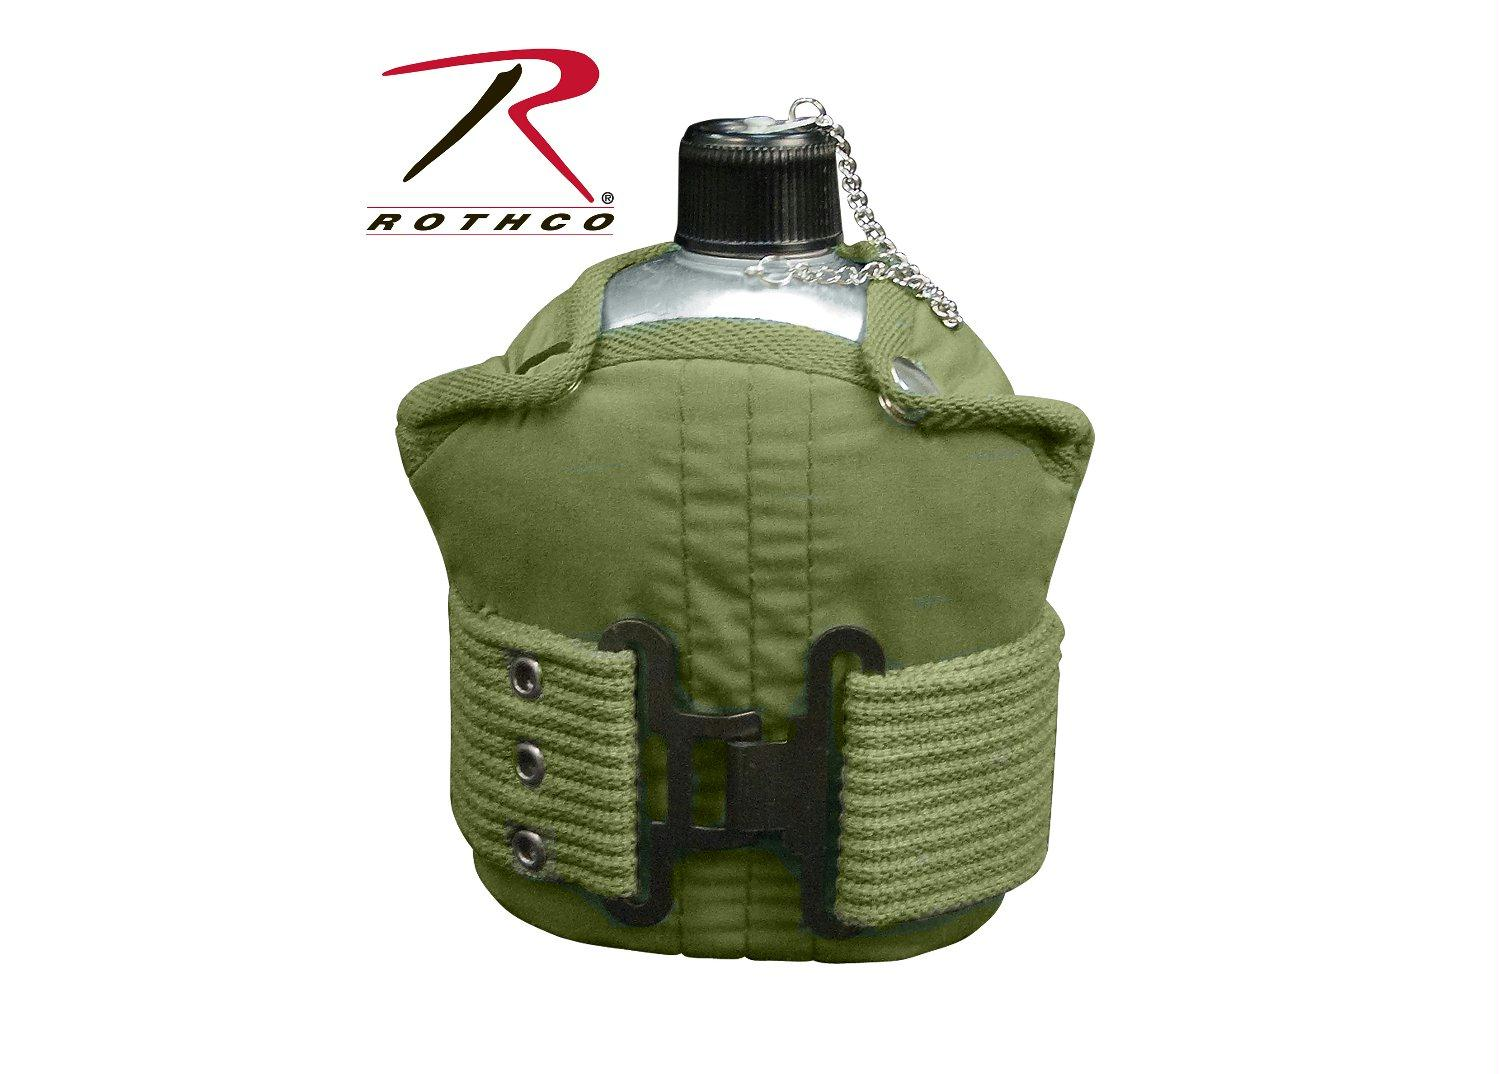 Rothco Aluminum Canteen And Pistol Belt Kit - Olive Drab